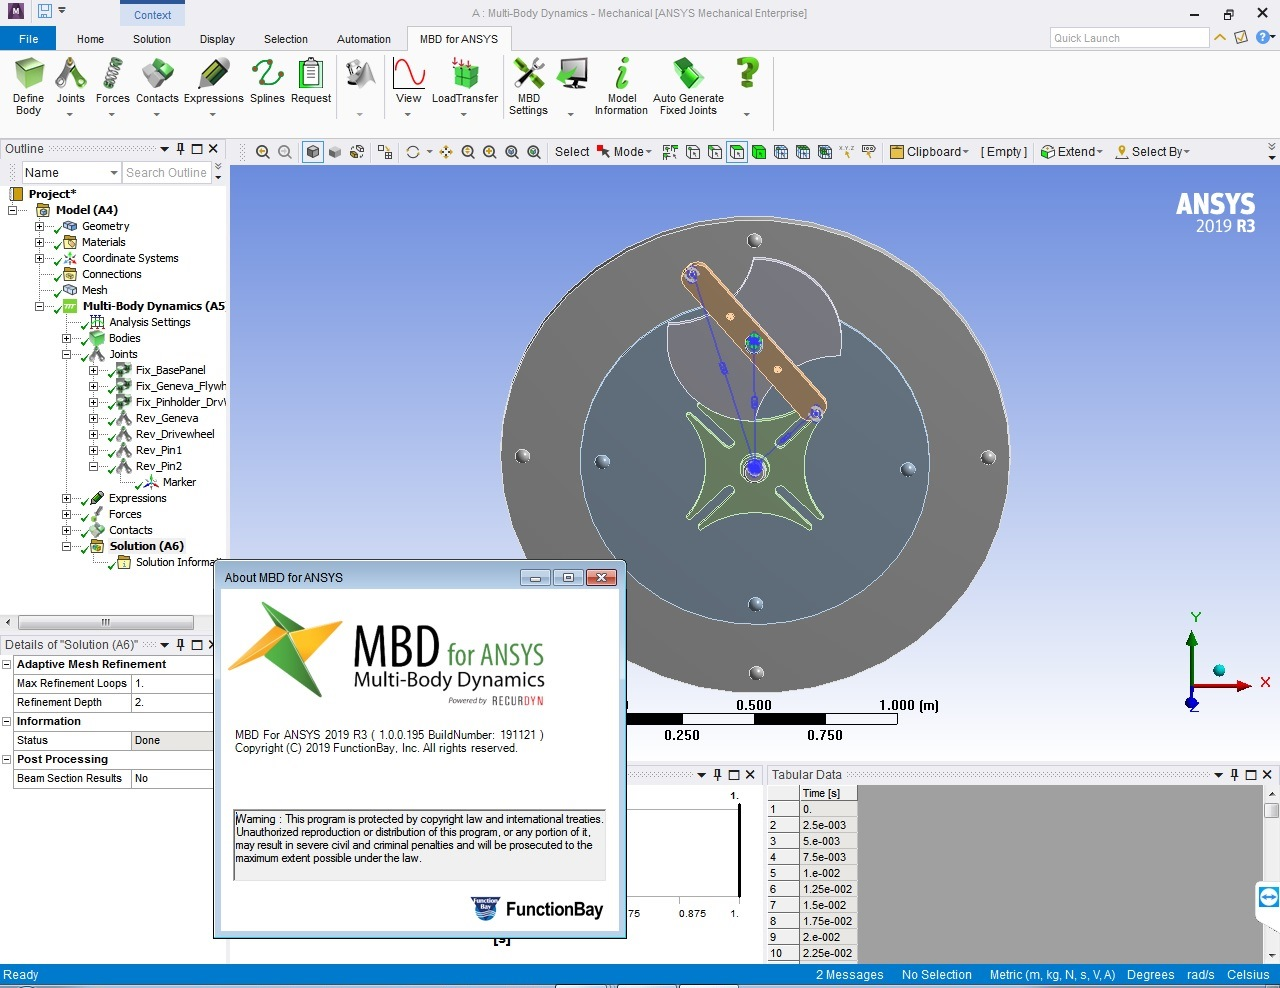 Working with FunctionBay Multi-Body Dynamics for ANSYS 2019 R3 full license